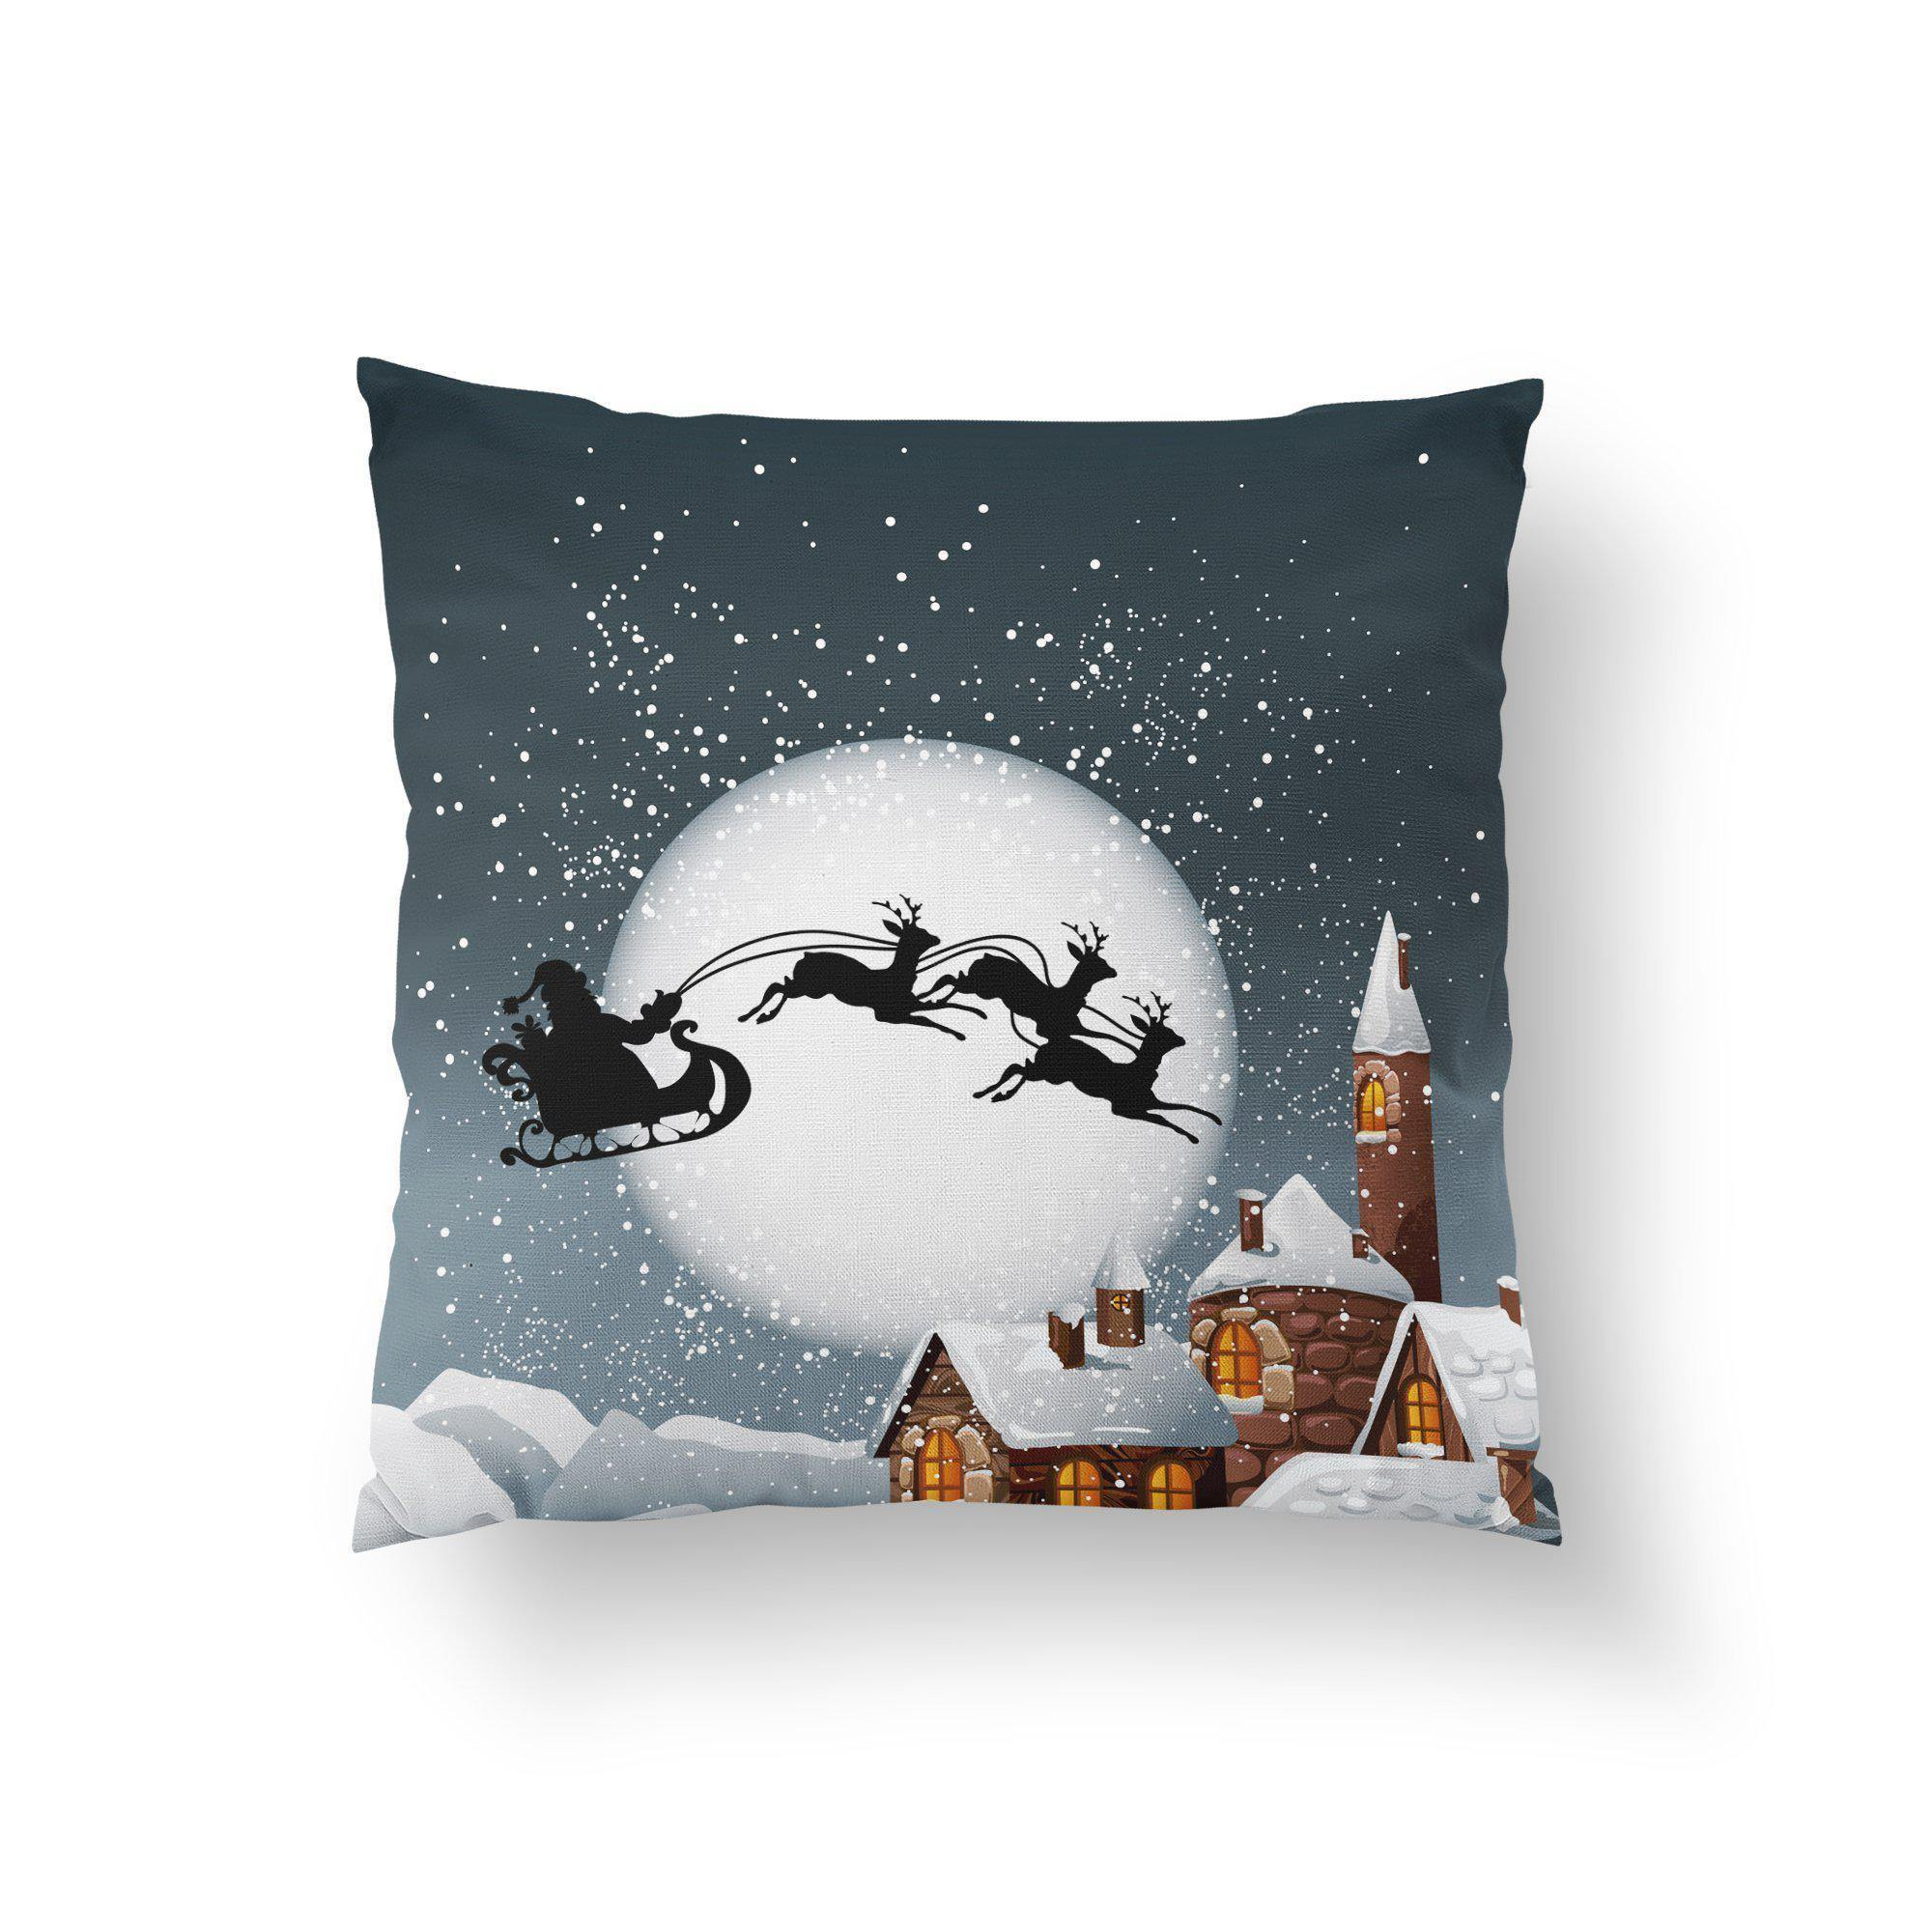 Christmas Pillow Cover - Pillow Covers - W.FRANCIS